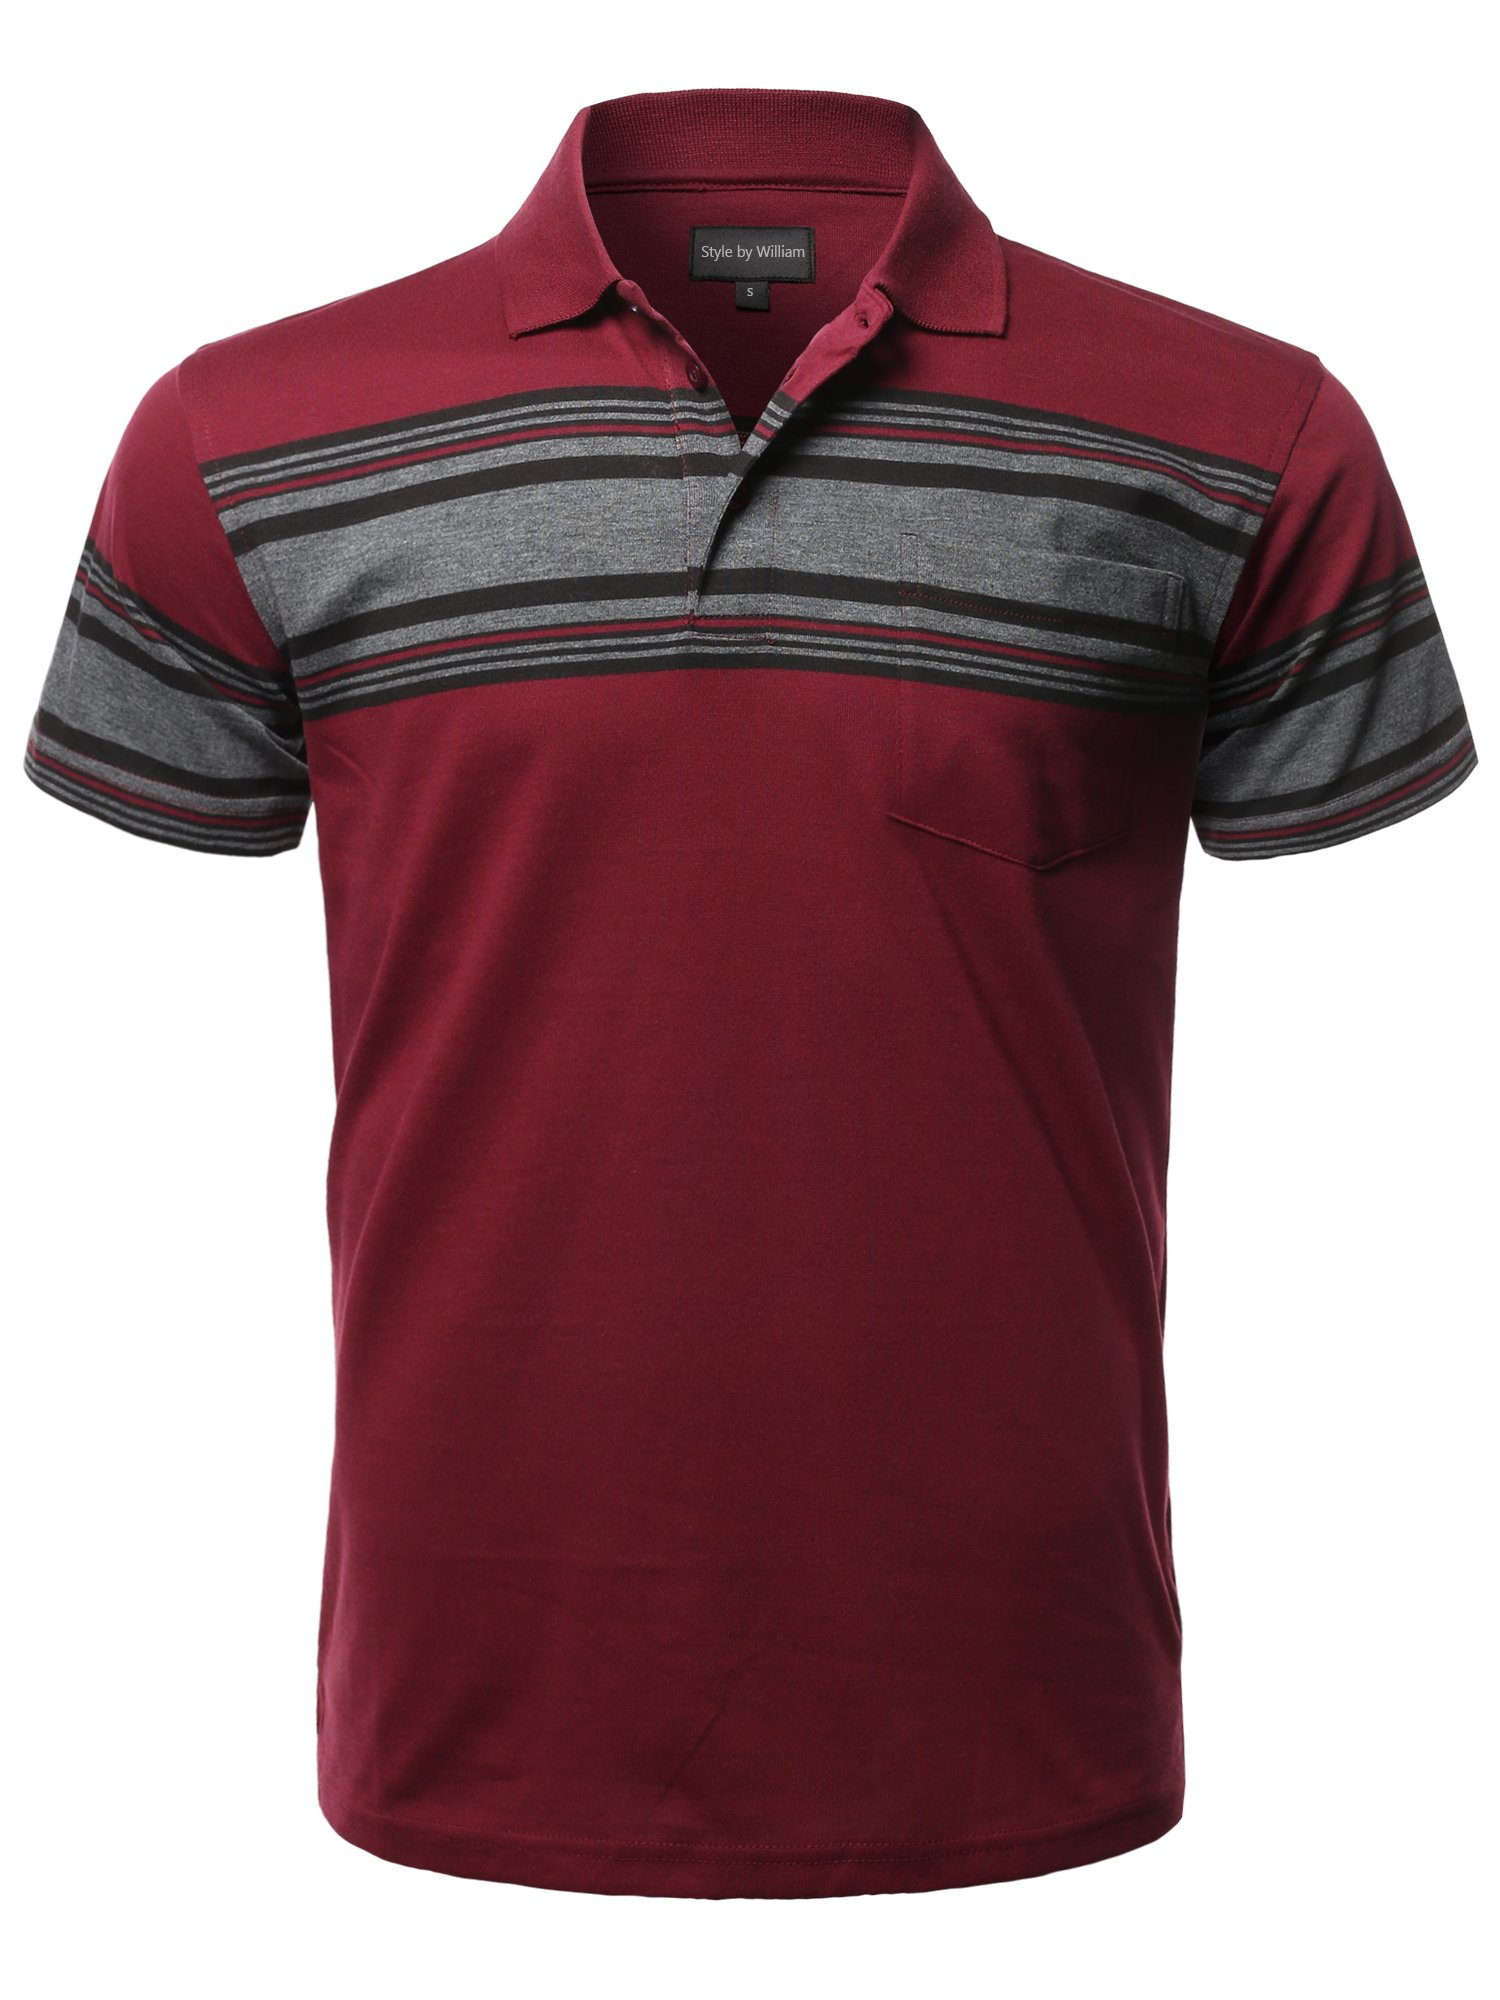 Style by William Casual Basic Striped Single Chest Pocket Short Sleeves Polo T-Shirt Burgundy XL